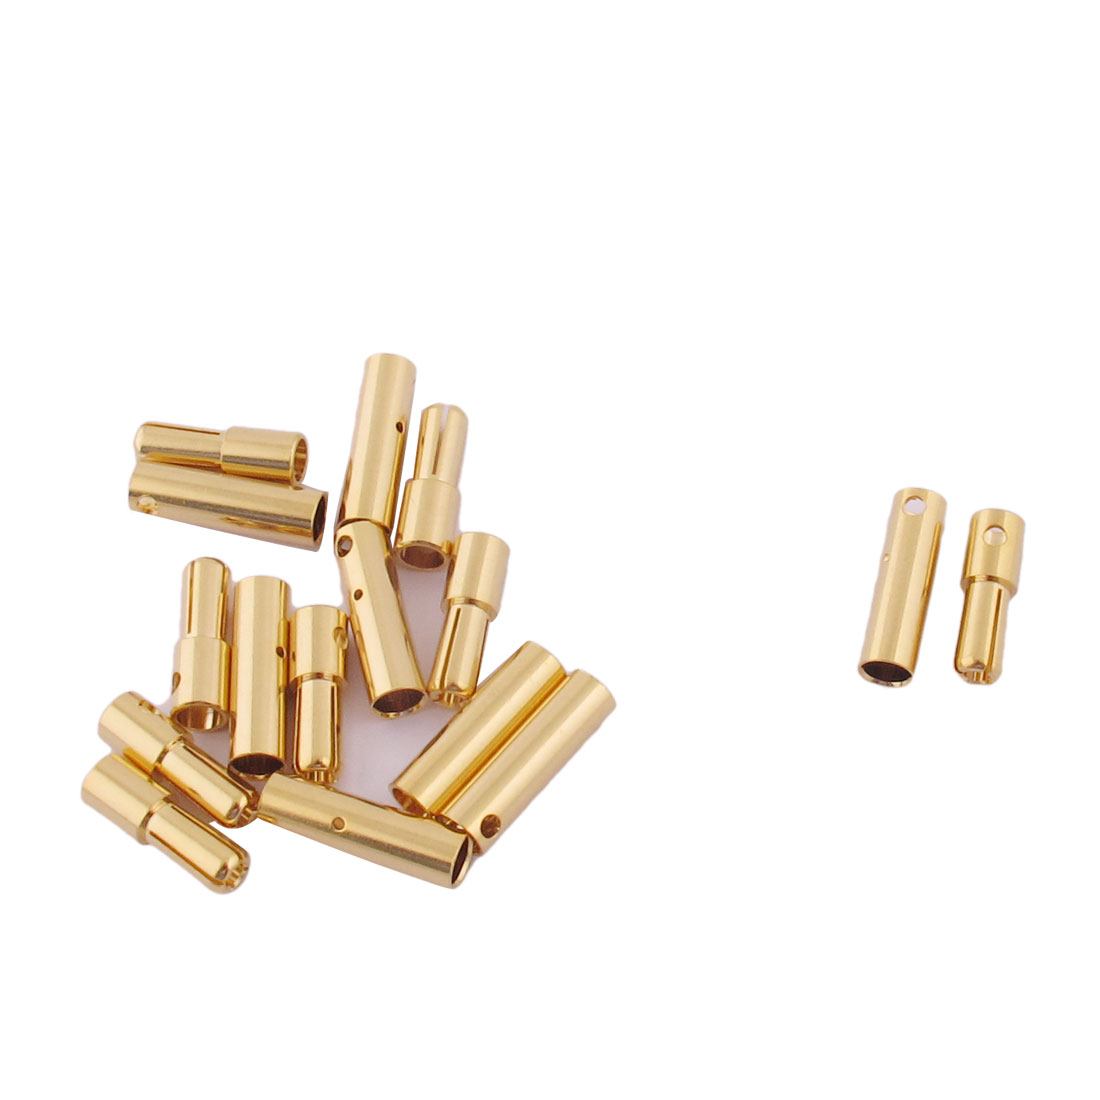 ESC RC LiPo Battery 4mm Male Female Banana Connector Gold Tone 8 Pairs